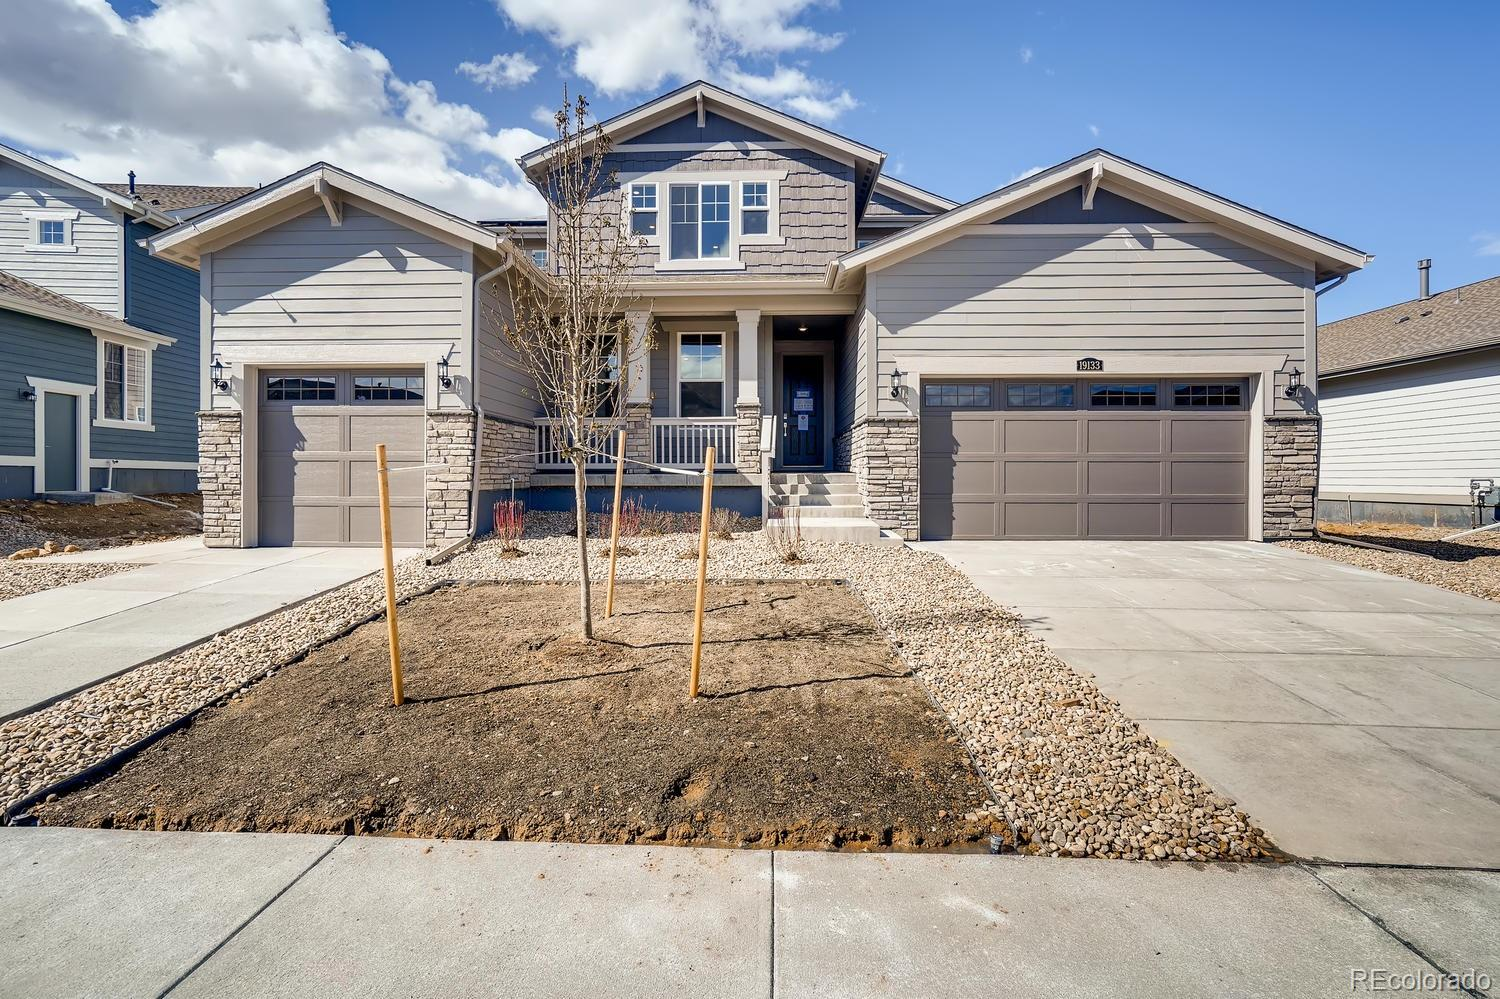 This stunning Next-Gen Superhome is designed to be two homes in one. Backs to Rocky Flats Wildlife Refuge on a beatuiful homesite – enjoy wildlife watching from your covered back deck or private deck from the master bedroom or simply taking in the amazing Flatirons views!  A total of 7 beds & 4.5 baths. The main home features 5 beds, 3.5 baths, great room, stunning kitchen w/huge island, loft and more. Attached private apartment suite features a separate entrance & 1 car garage, living area, kitchenette w/refrigerator & microwave, master suite & large 3/4 bath and a secondary bedroom. A perfect space for guests or extended family. Beautiful finishes and upgrades throughout make this home feel modern and fresh. This home has it all! Great Location! Energy Star 3.0 certified and HERS rating TBD.